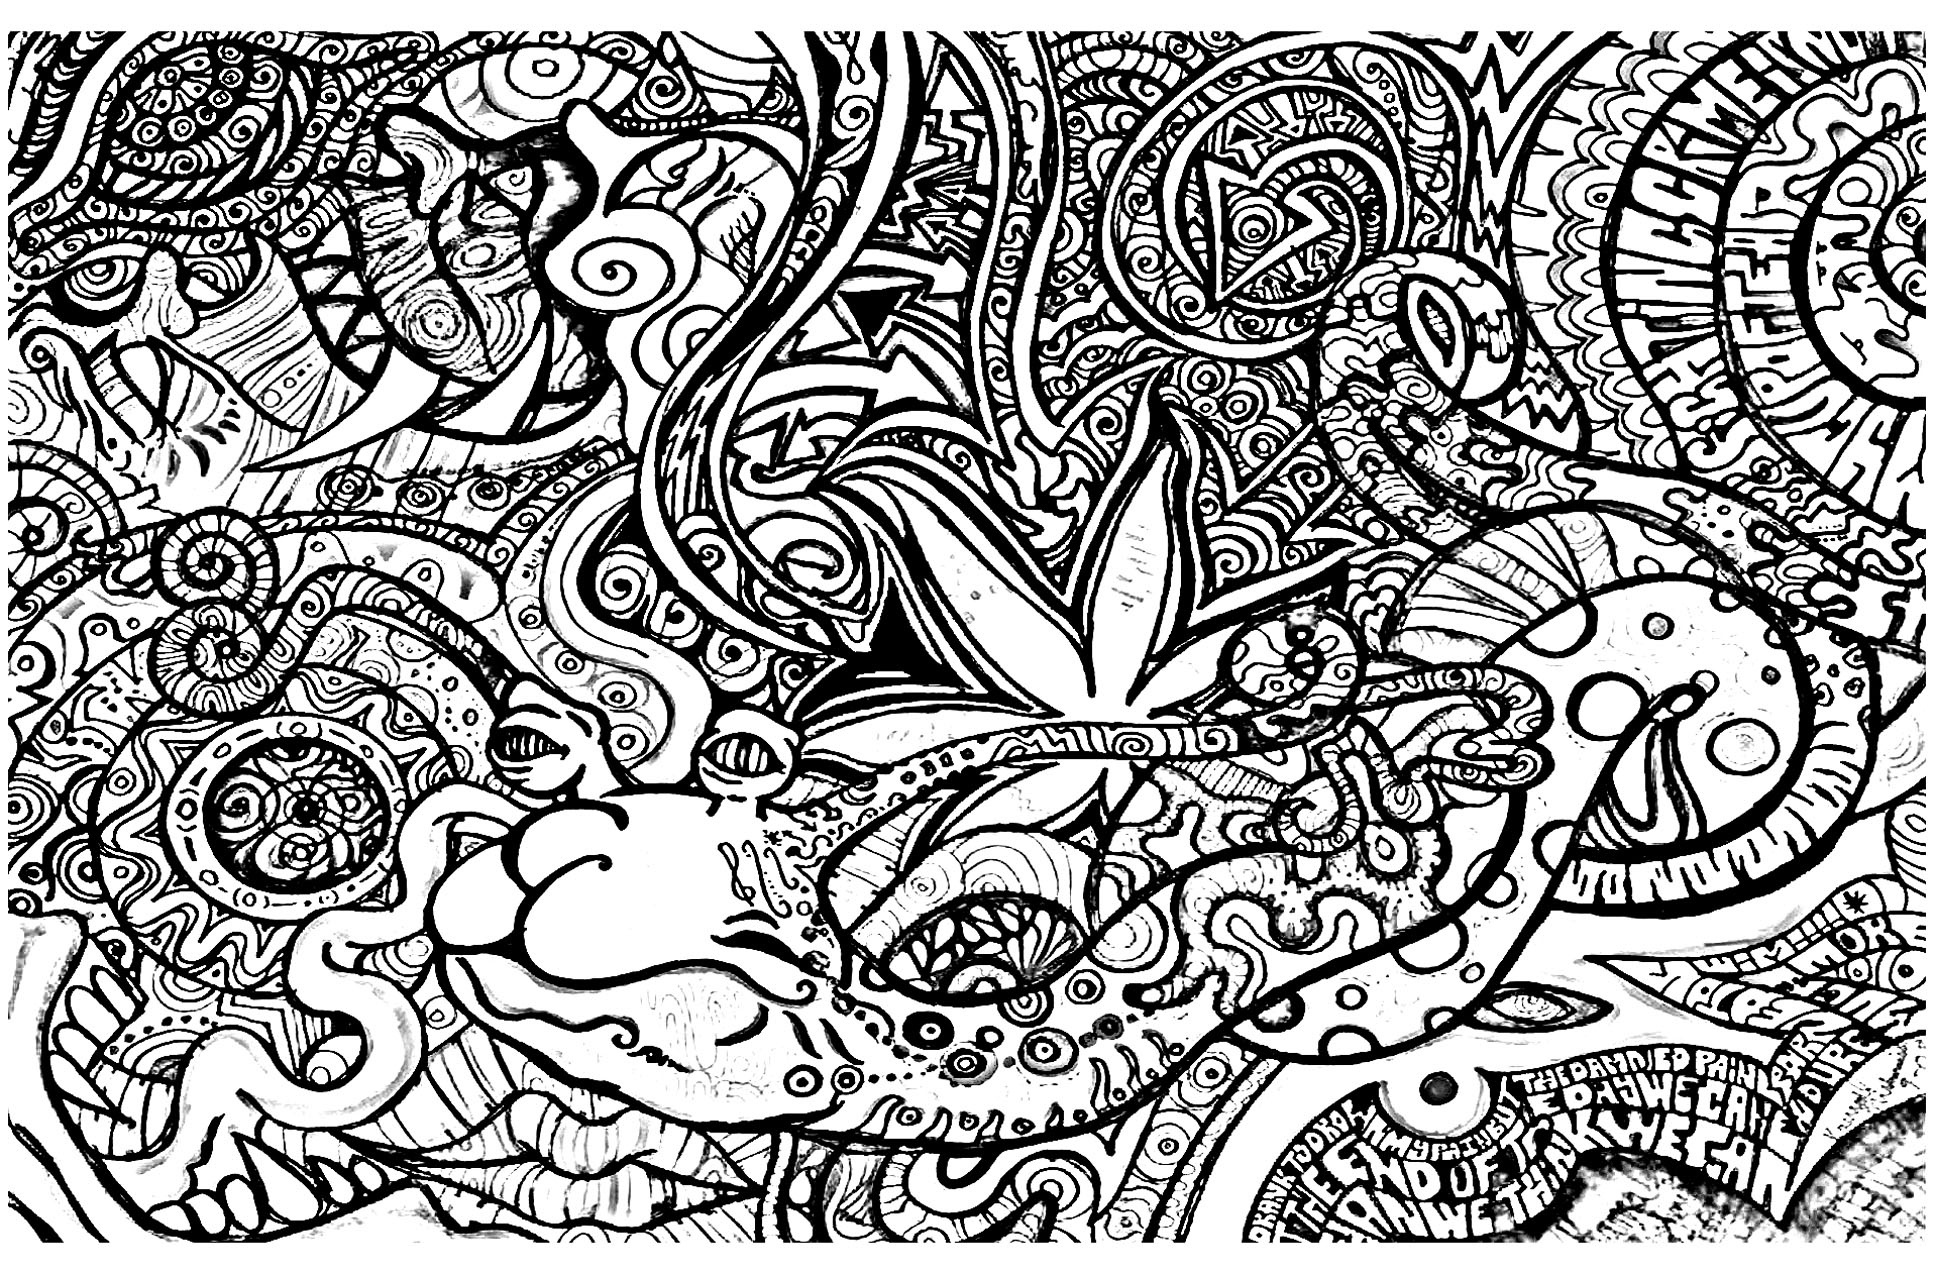 Psychedelic Coloring Pages - Psychedelic Coloring Pages For Adults - Free Printable Trippy Coloring Pages